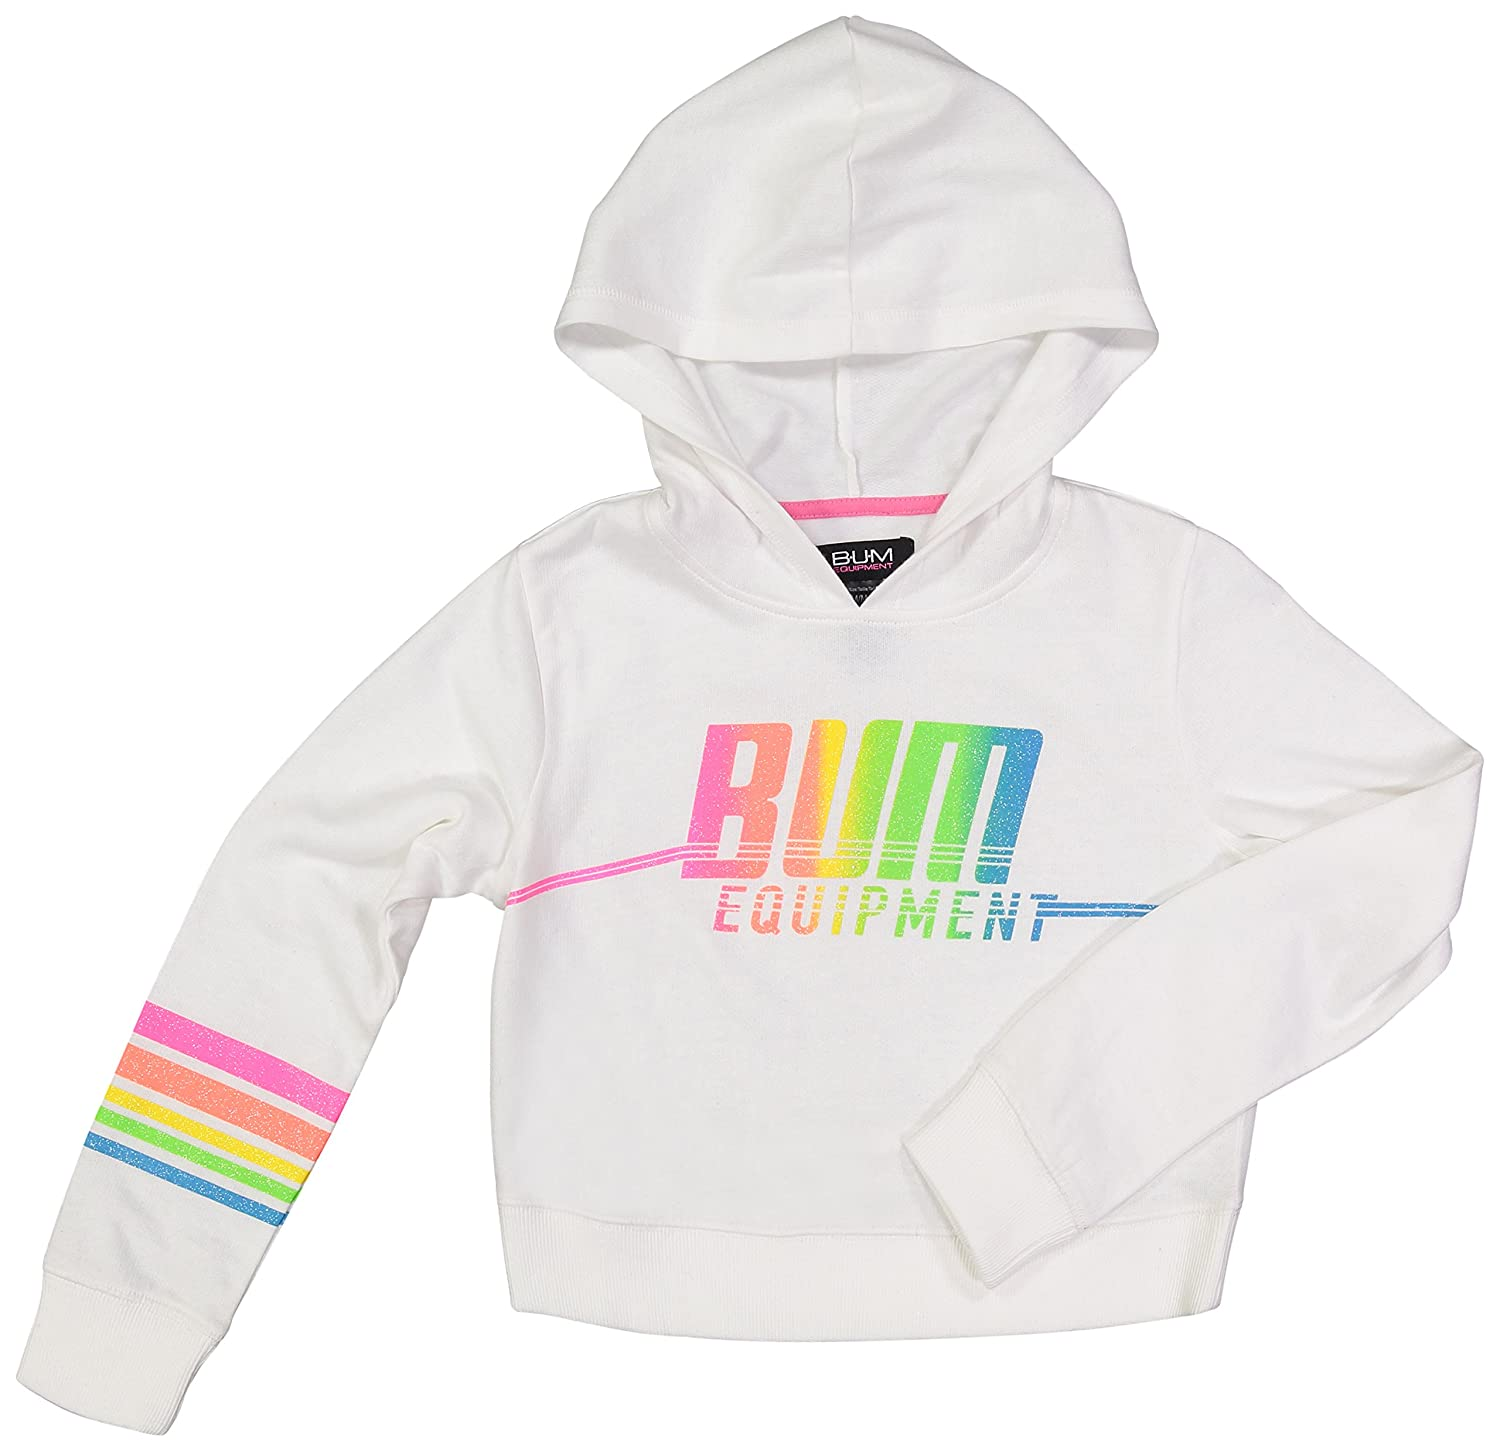 B.U.M Equipment Girls Fleece Pull Over Active Crop Top Hooded Sweatshirt K4A2016